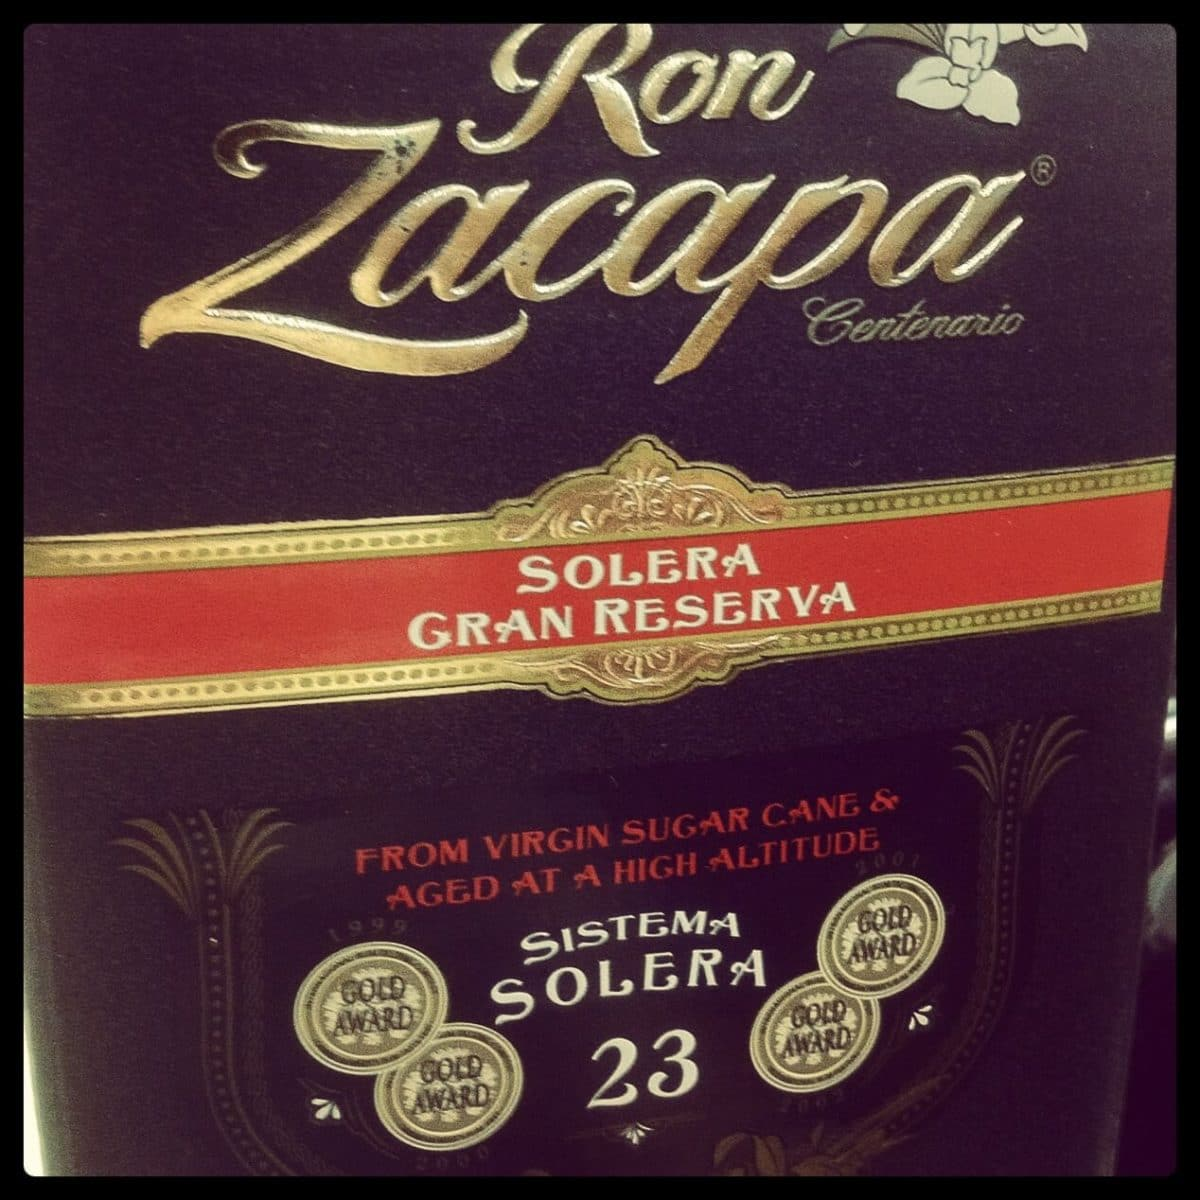 Ron Zacapa Centenario 23 – The Rum for Whiskey Drinkers